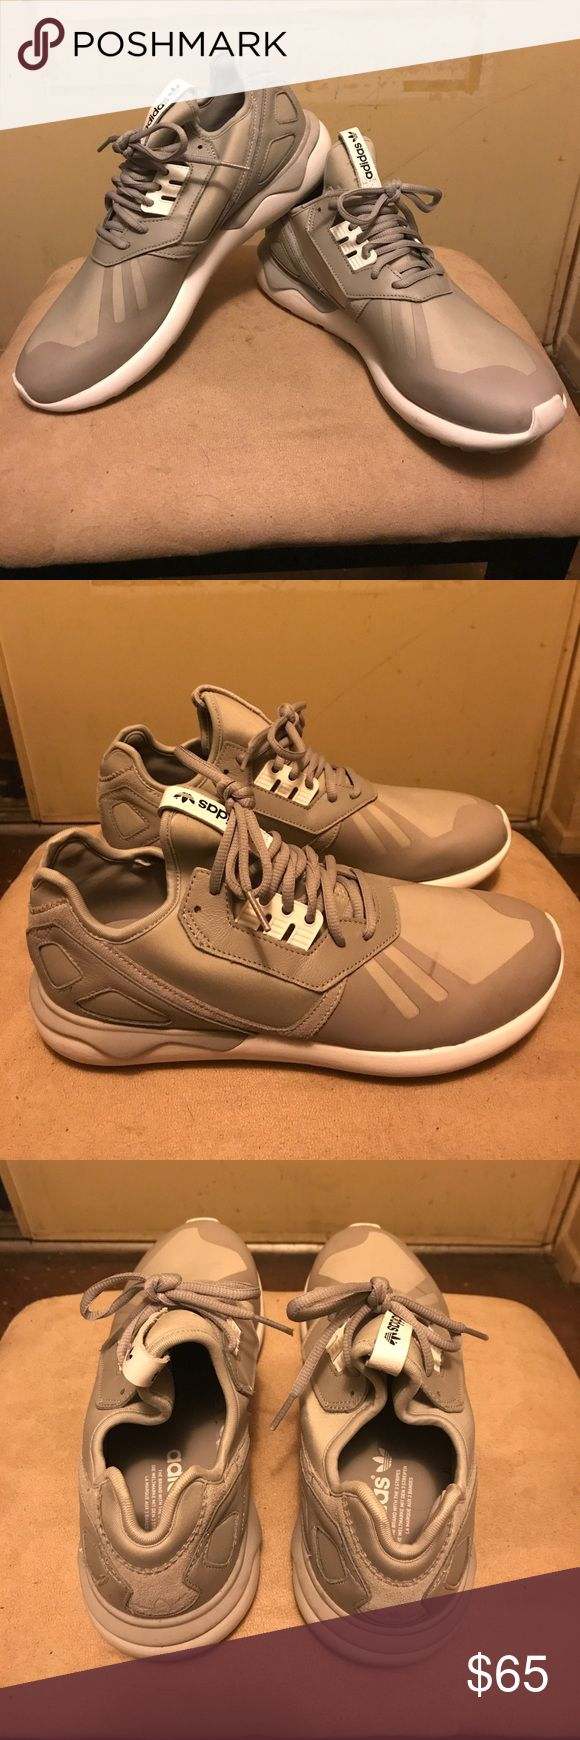 Adidas Tubular Runner Athletic Shoes 9/10 Condition / Small scuffs here and there / Very comfortable shoes / Only worn twice / Original Box not included / Offer me a good price 😄 adidas Shoes Sneakers